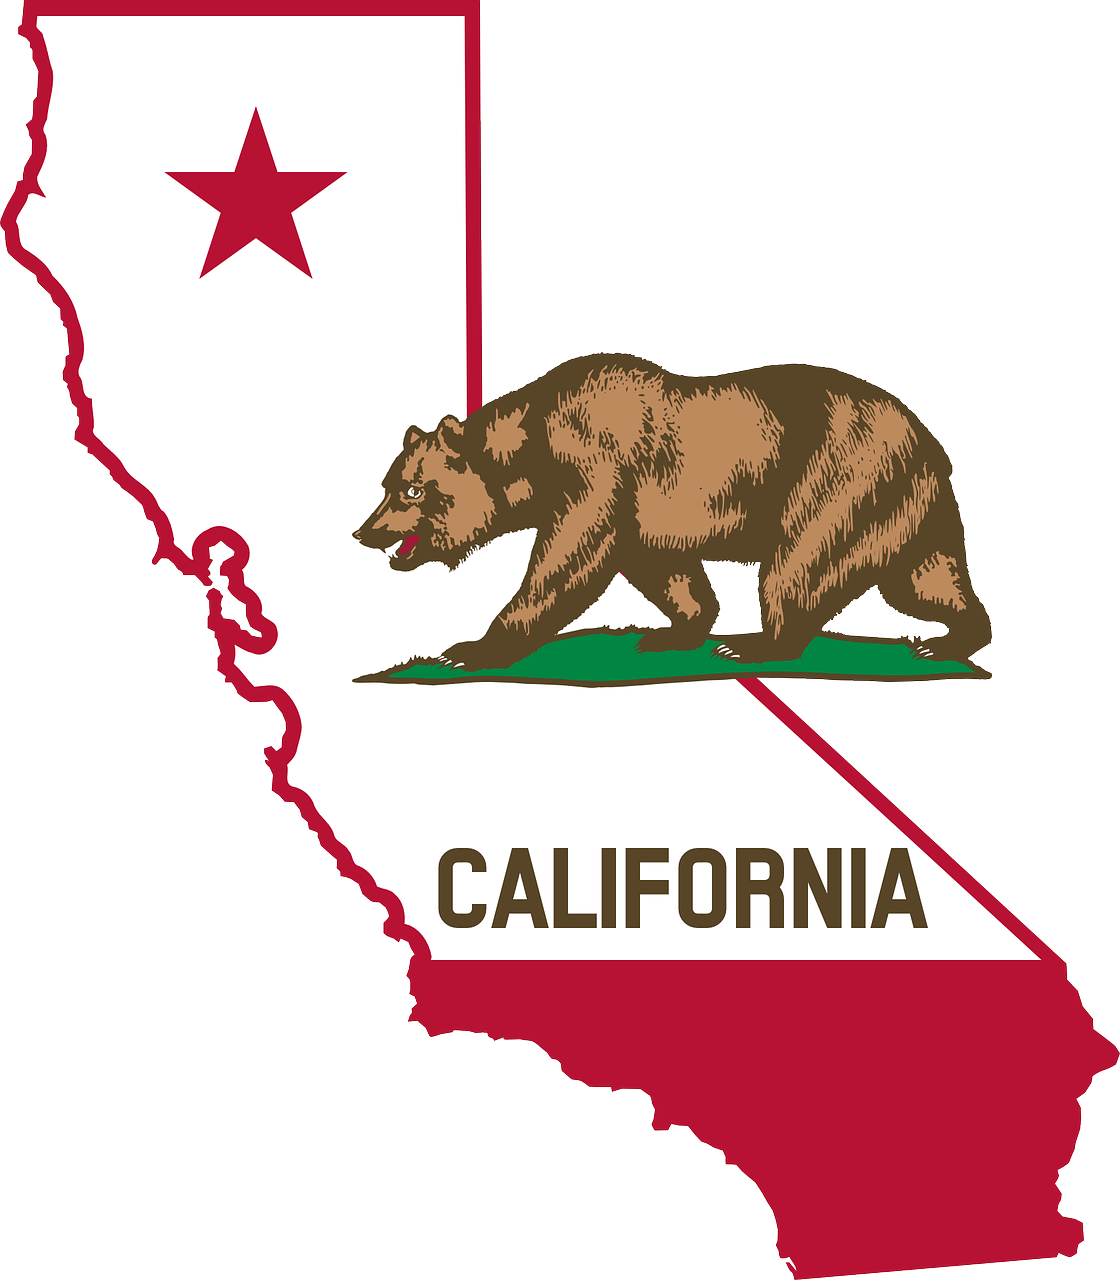 Commercial Property Tax Hike Fails in California Vote